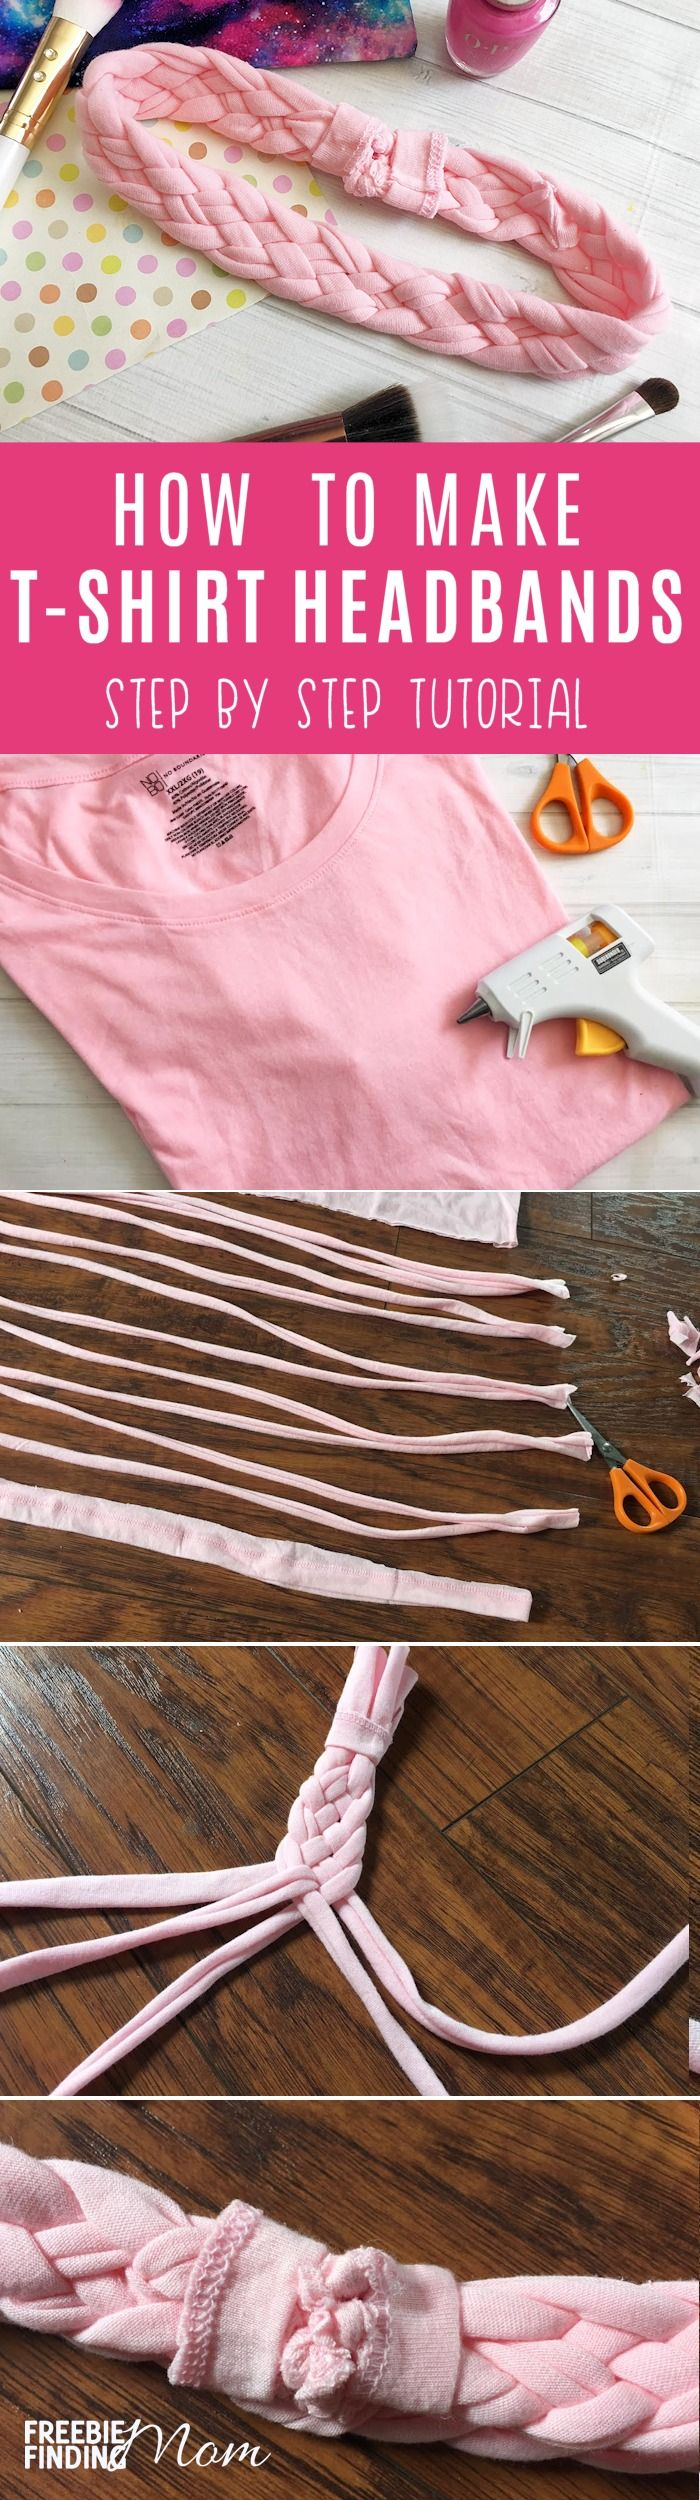 How would you like to transform old T-shirts into chic homemade hair accessories? In minutes, you can make these adorable homemade headbands for kids or adults by following this easy no-sew tutorial. Have fun changing up the colors and embellishments to match your outfit perfectly.